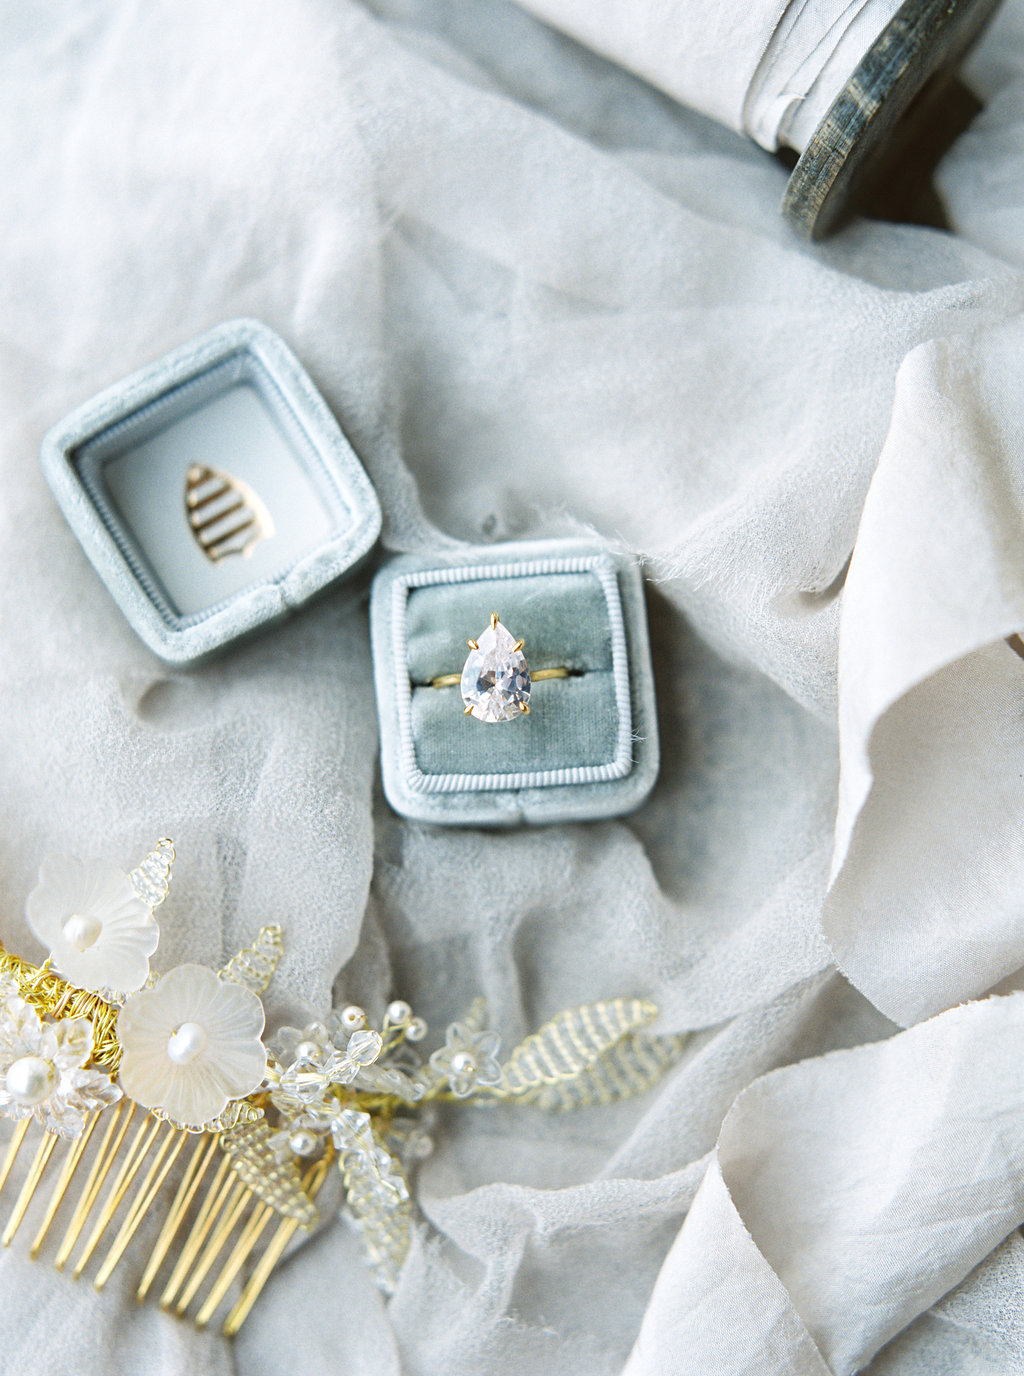 Blue Ring Box with Pear Shaped Diamond | Credit: Courtney Leigh